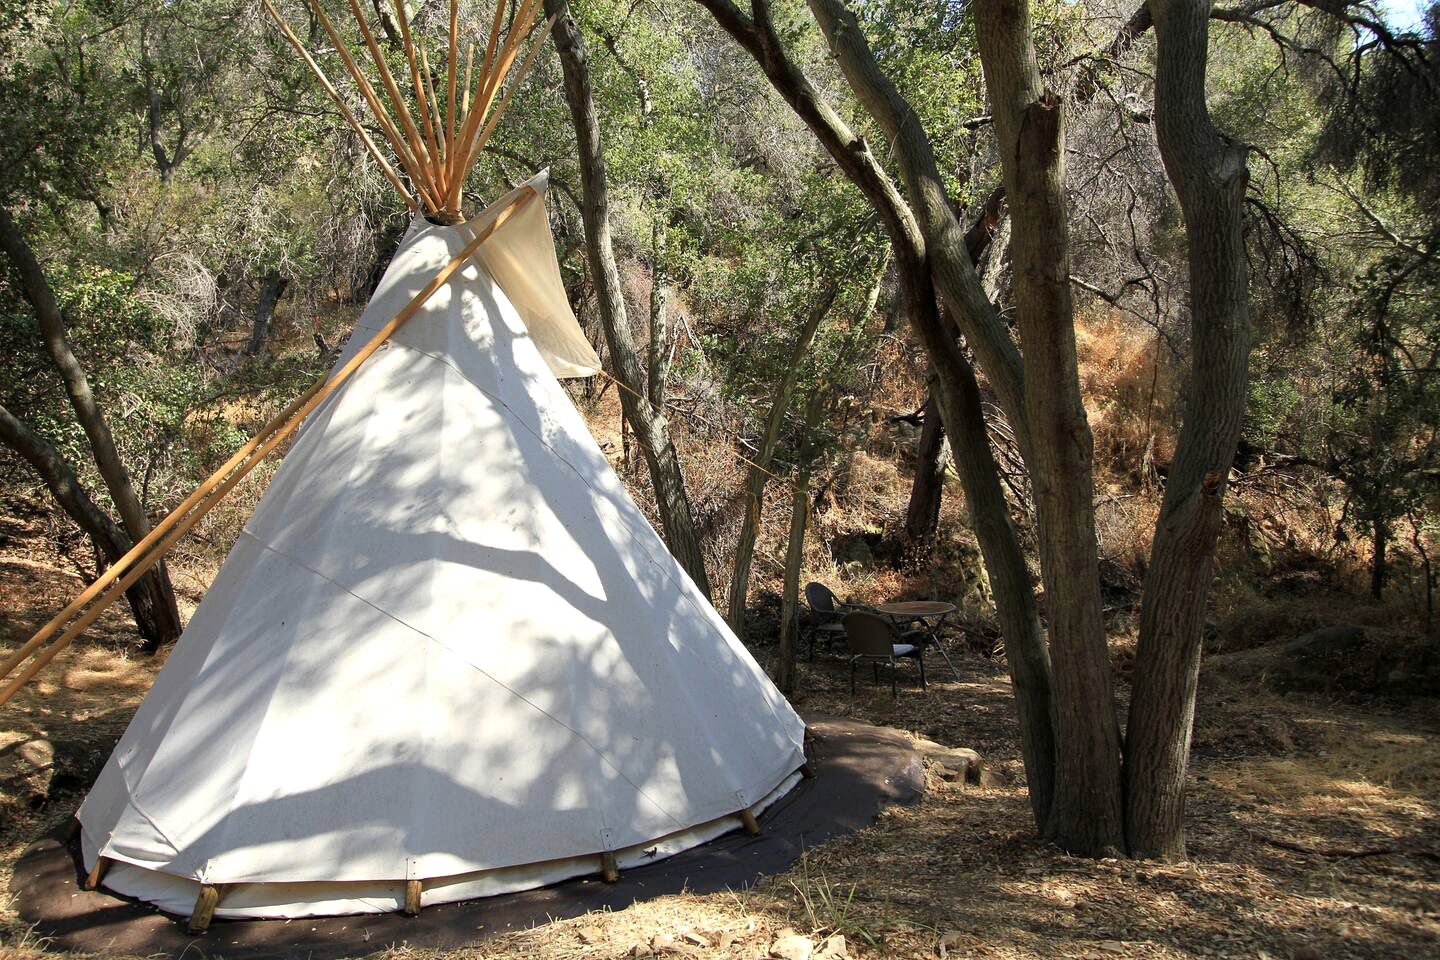 Charming tipi rental near LA ideal for California glamping